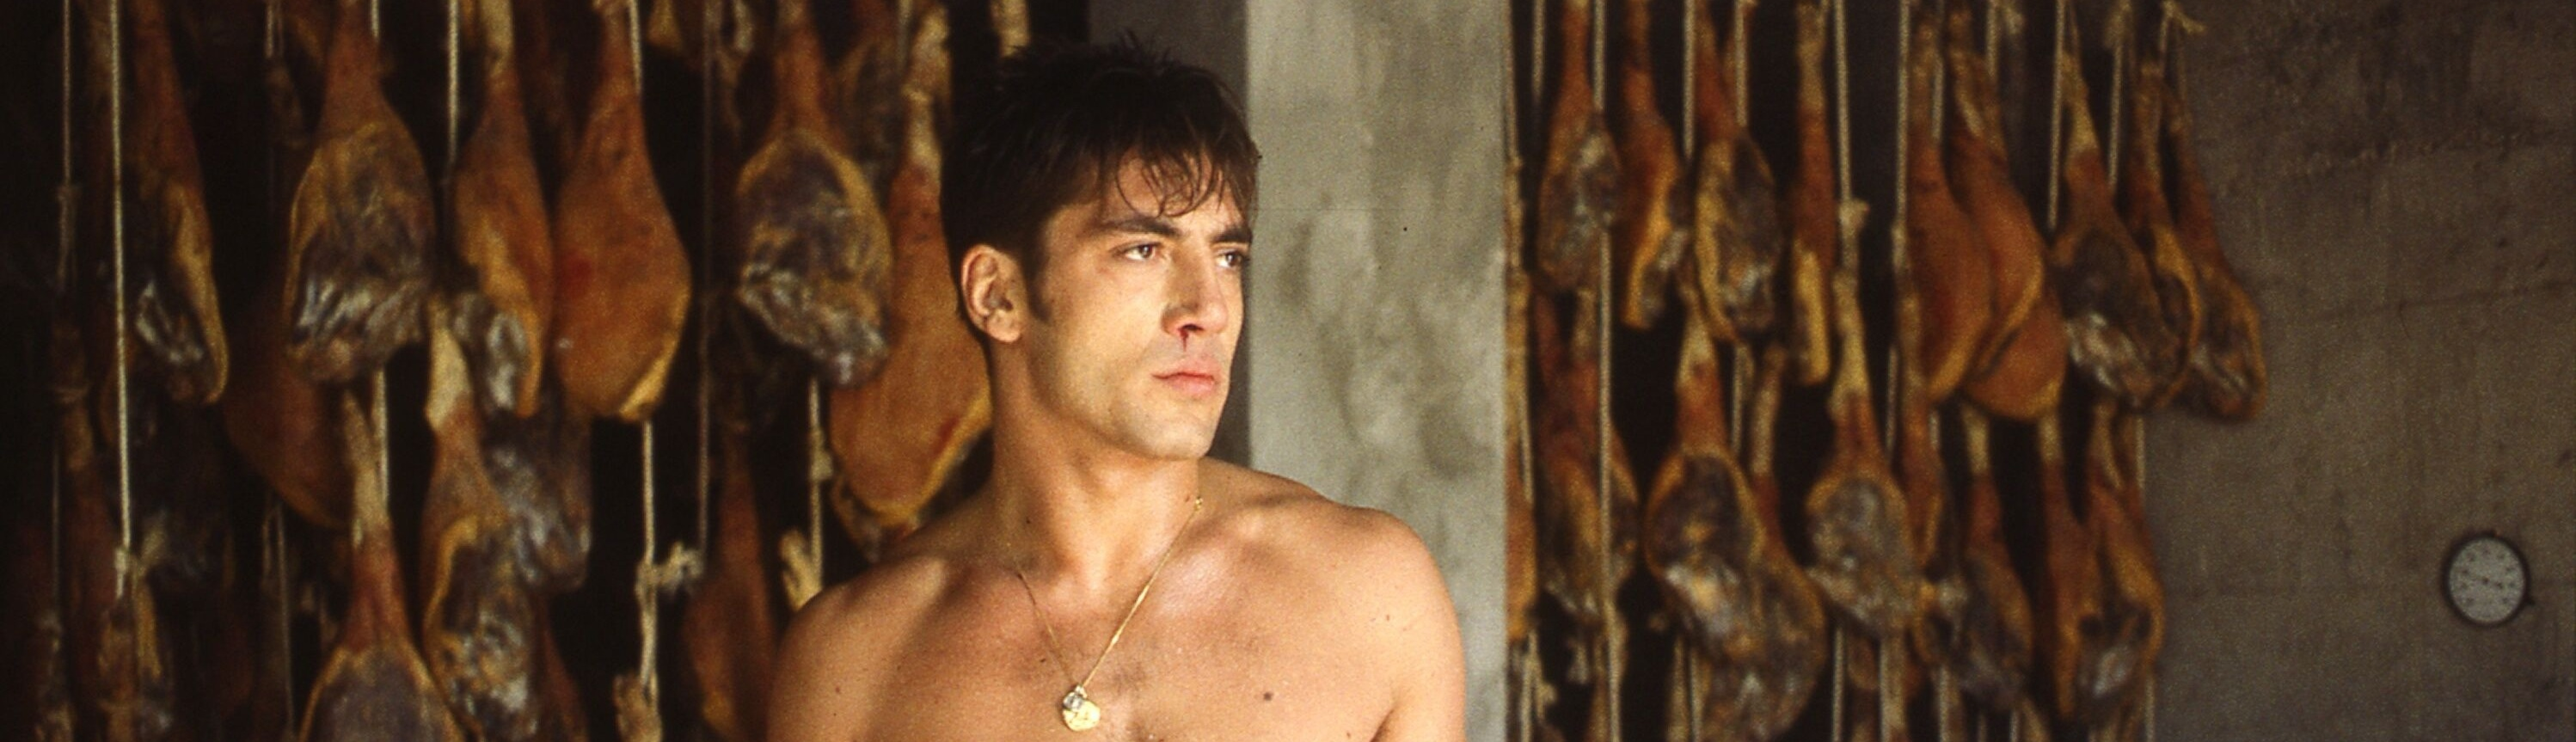 SF: Don't Miss These 4 Films By the Director Who Introduced Javier Bardem to the World